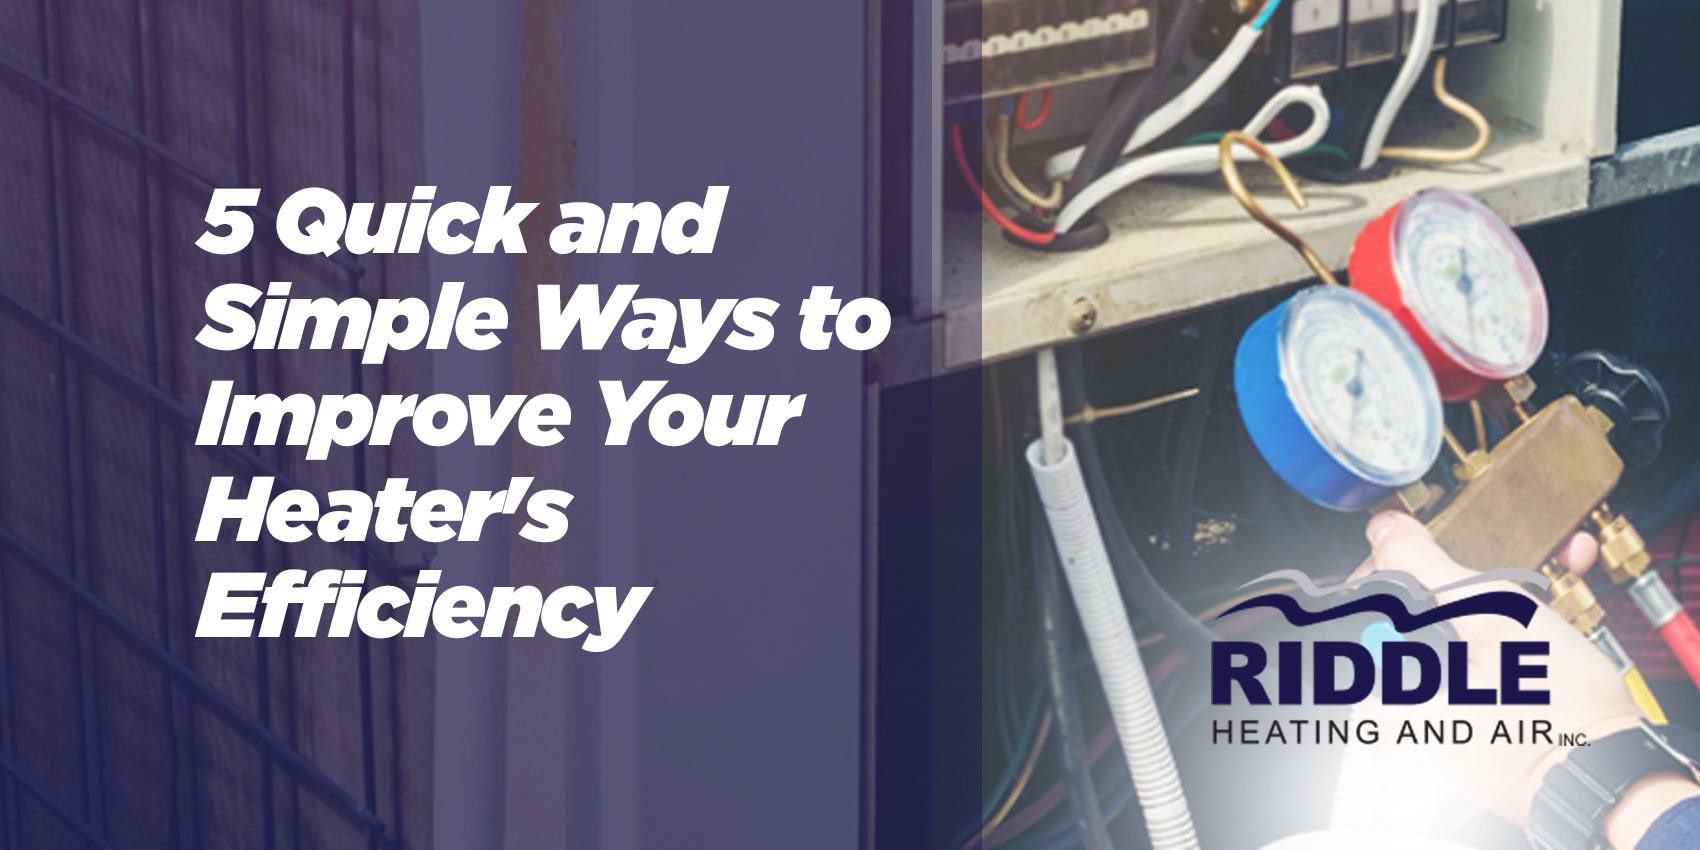 5 Quick and Simple Ways to Improve Your Heater's Efficiency